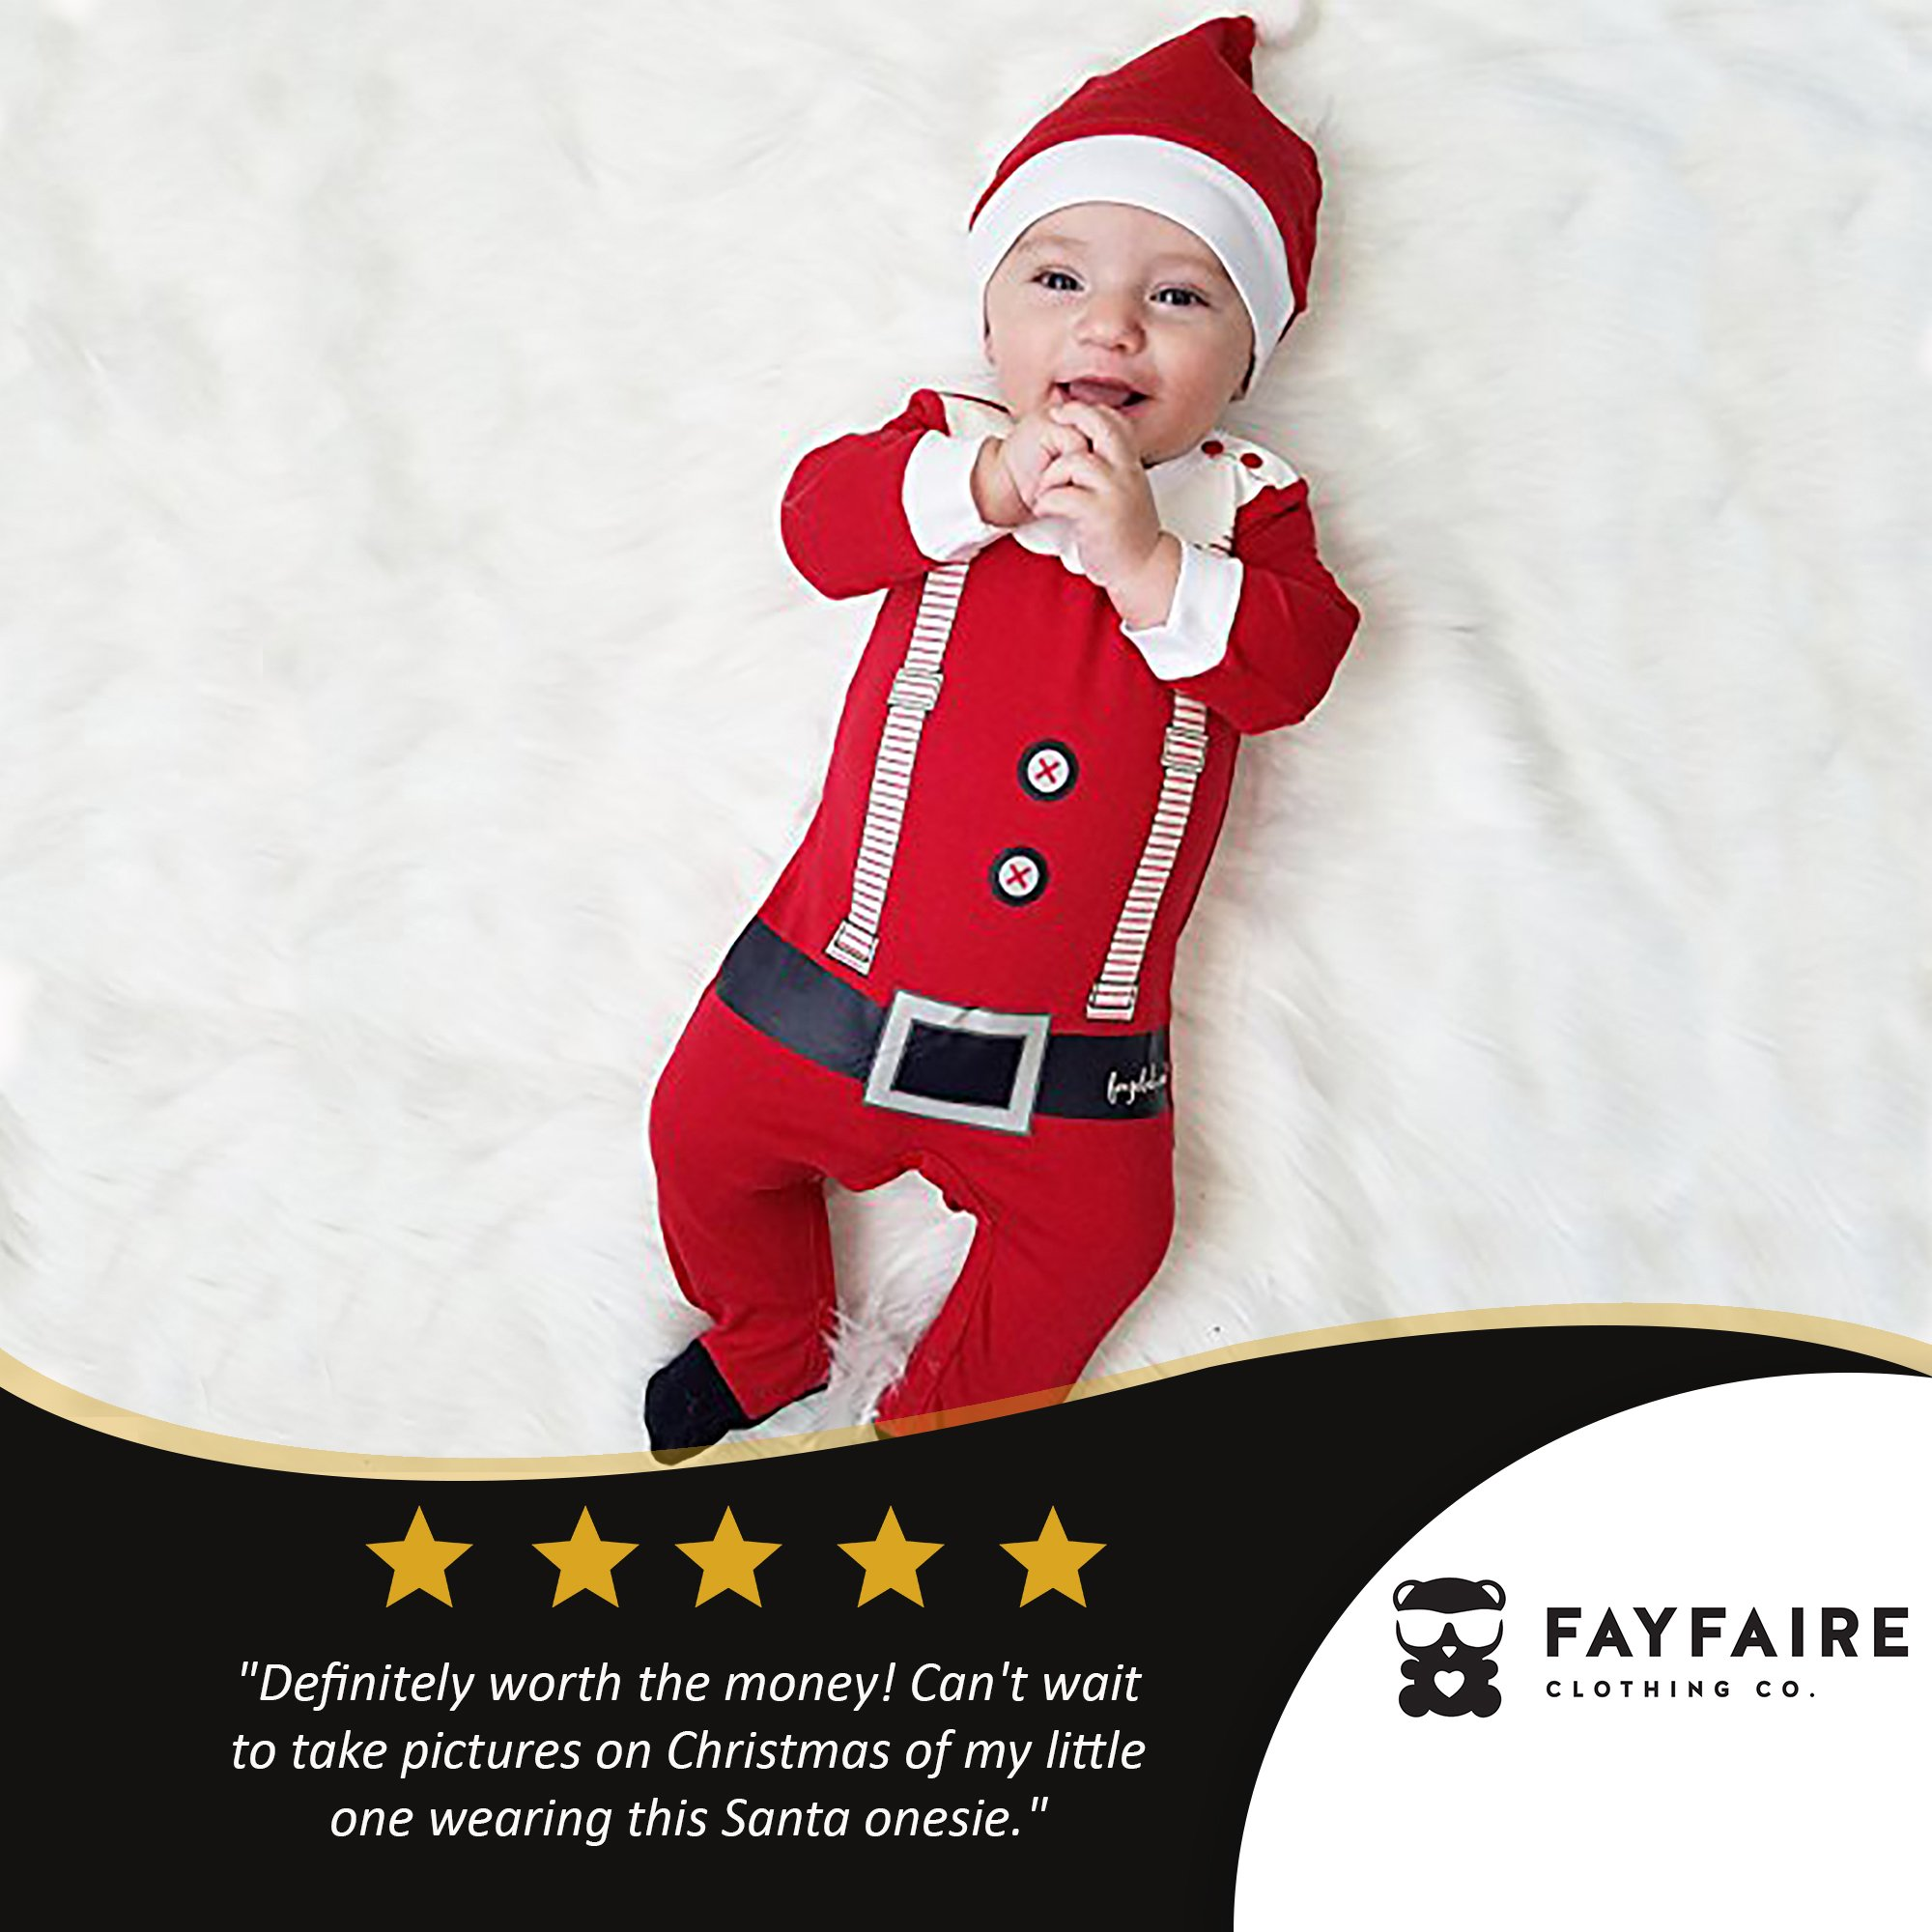 Fayfaire Christmas Pajamas Boutique Quality: Adorable Xmas Santa Suit with Hat 6-12M by Fayfaire (Image #2)